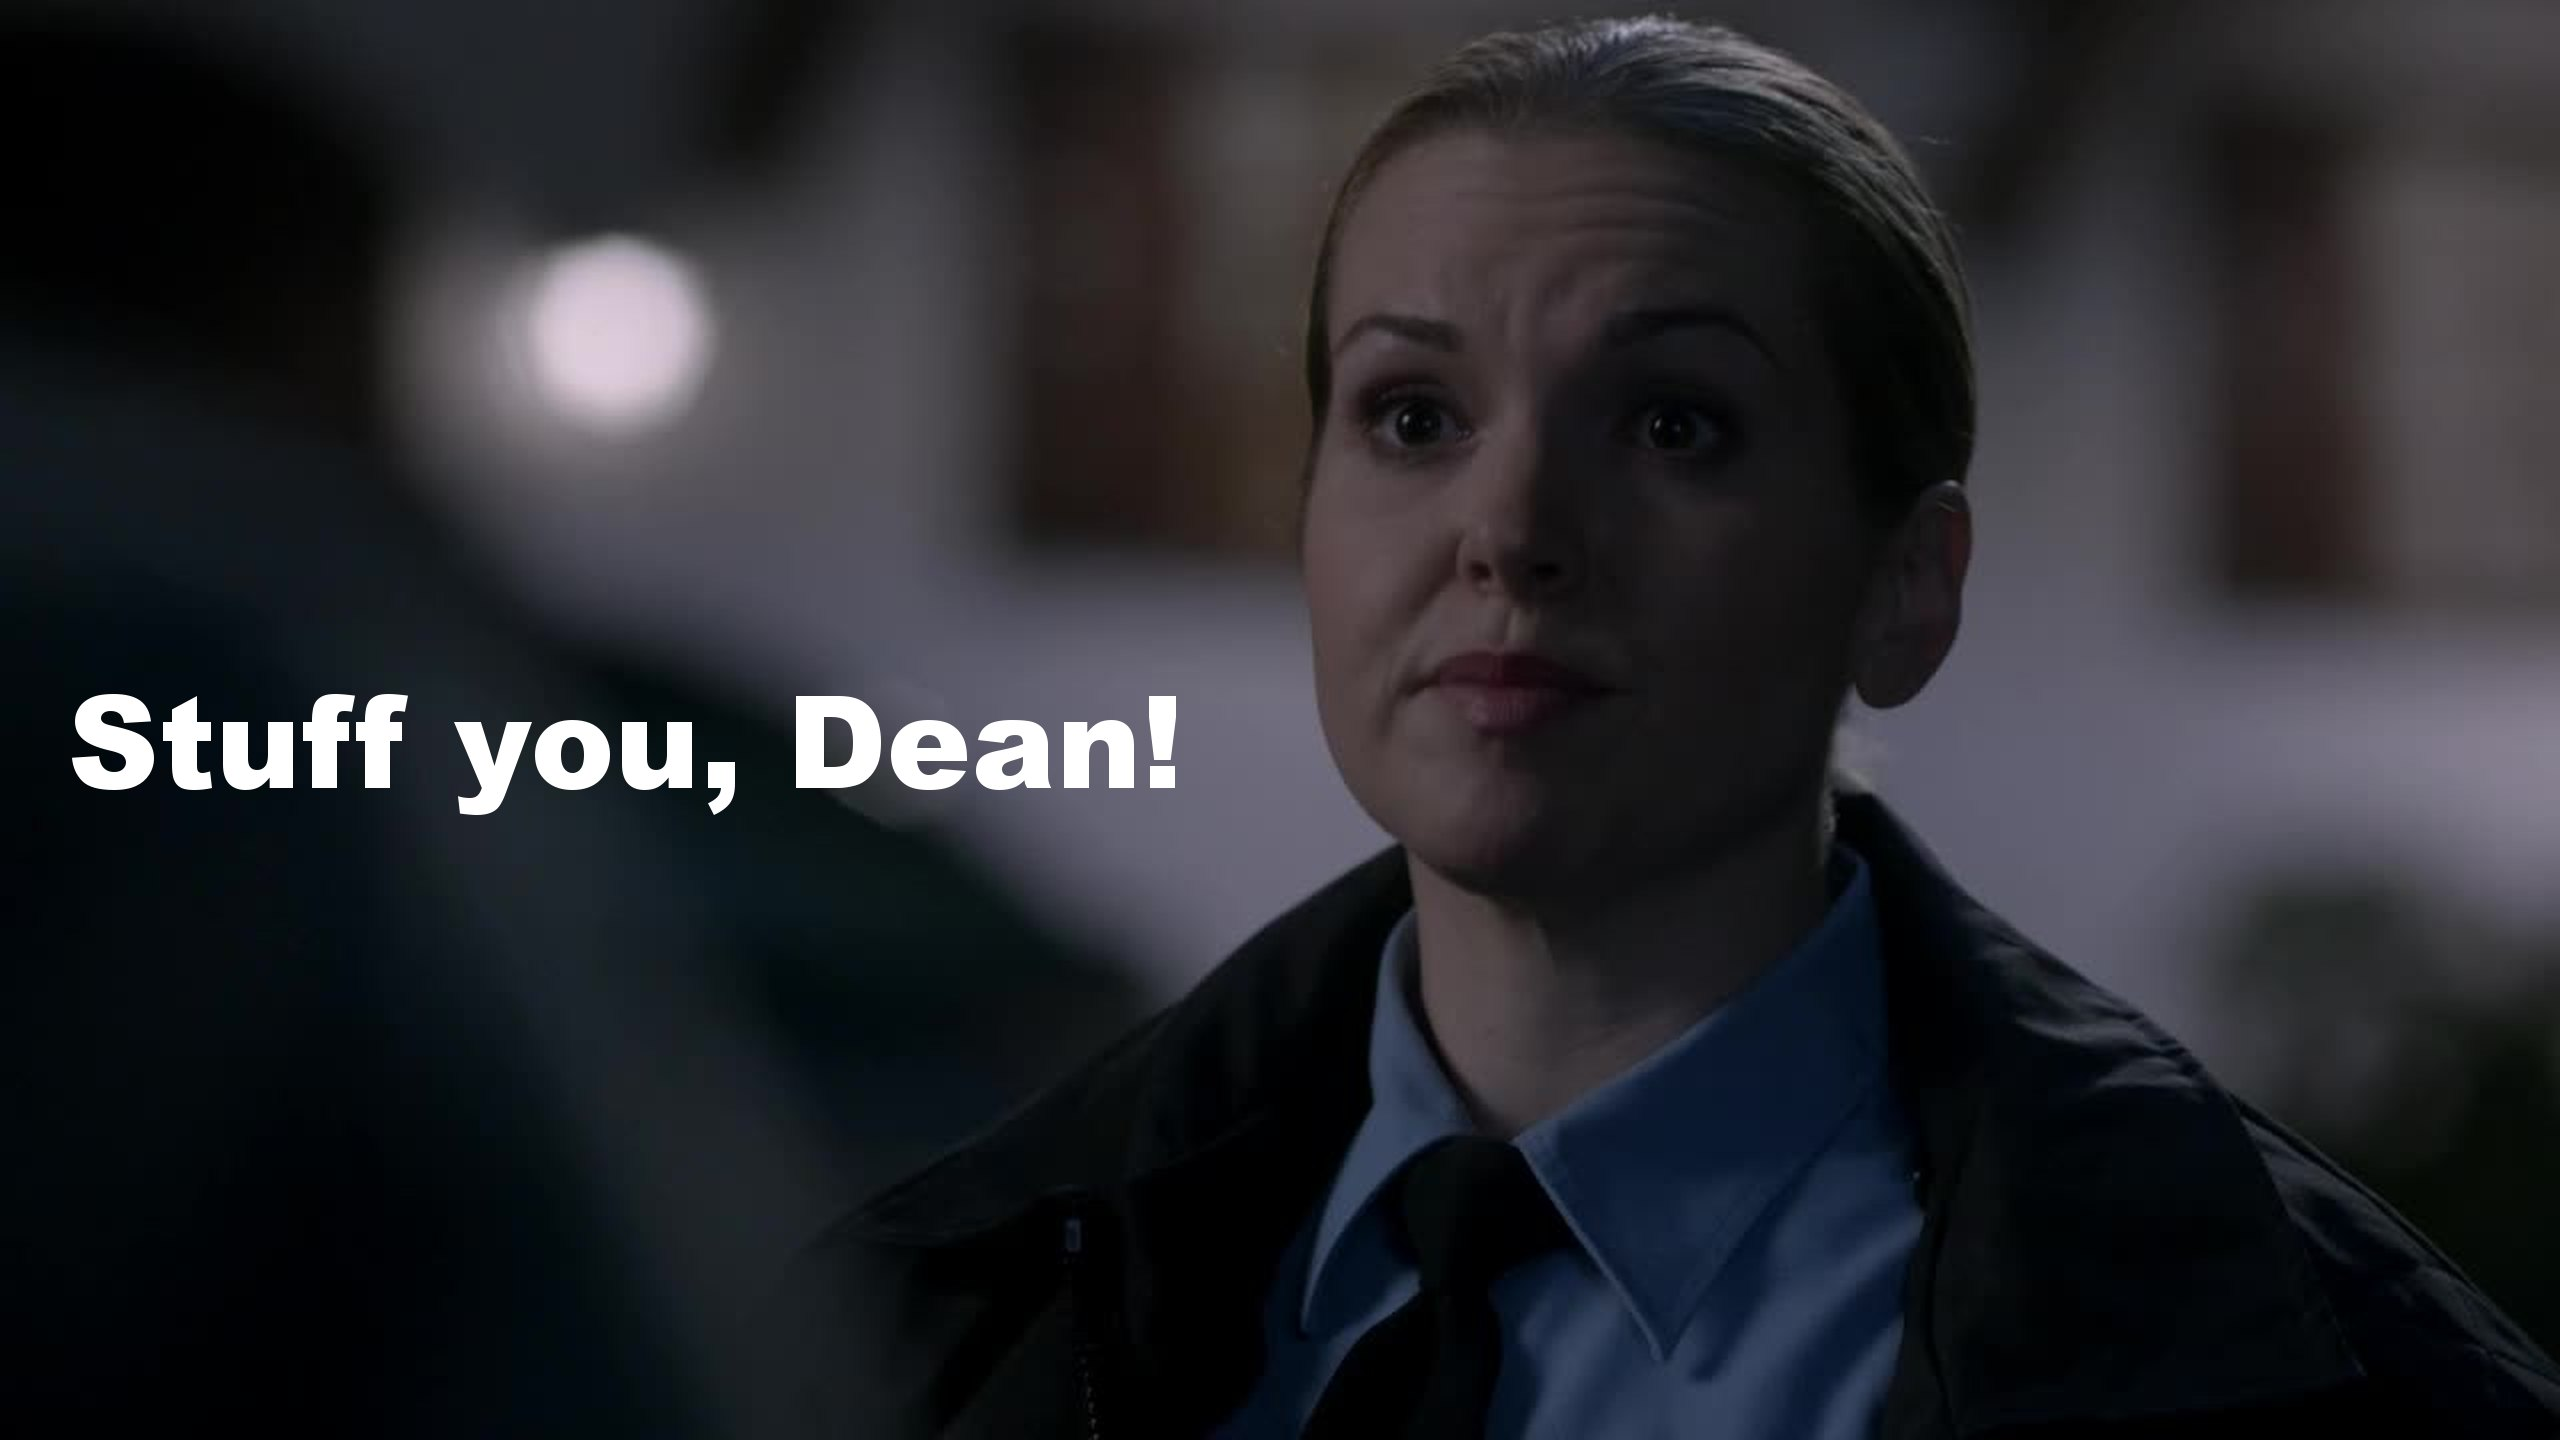 Stuff you, Dean! Or whatever your name is.